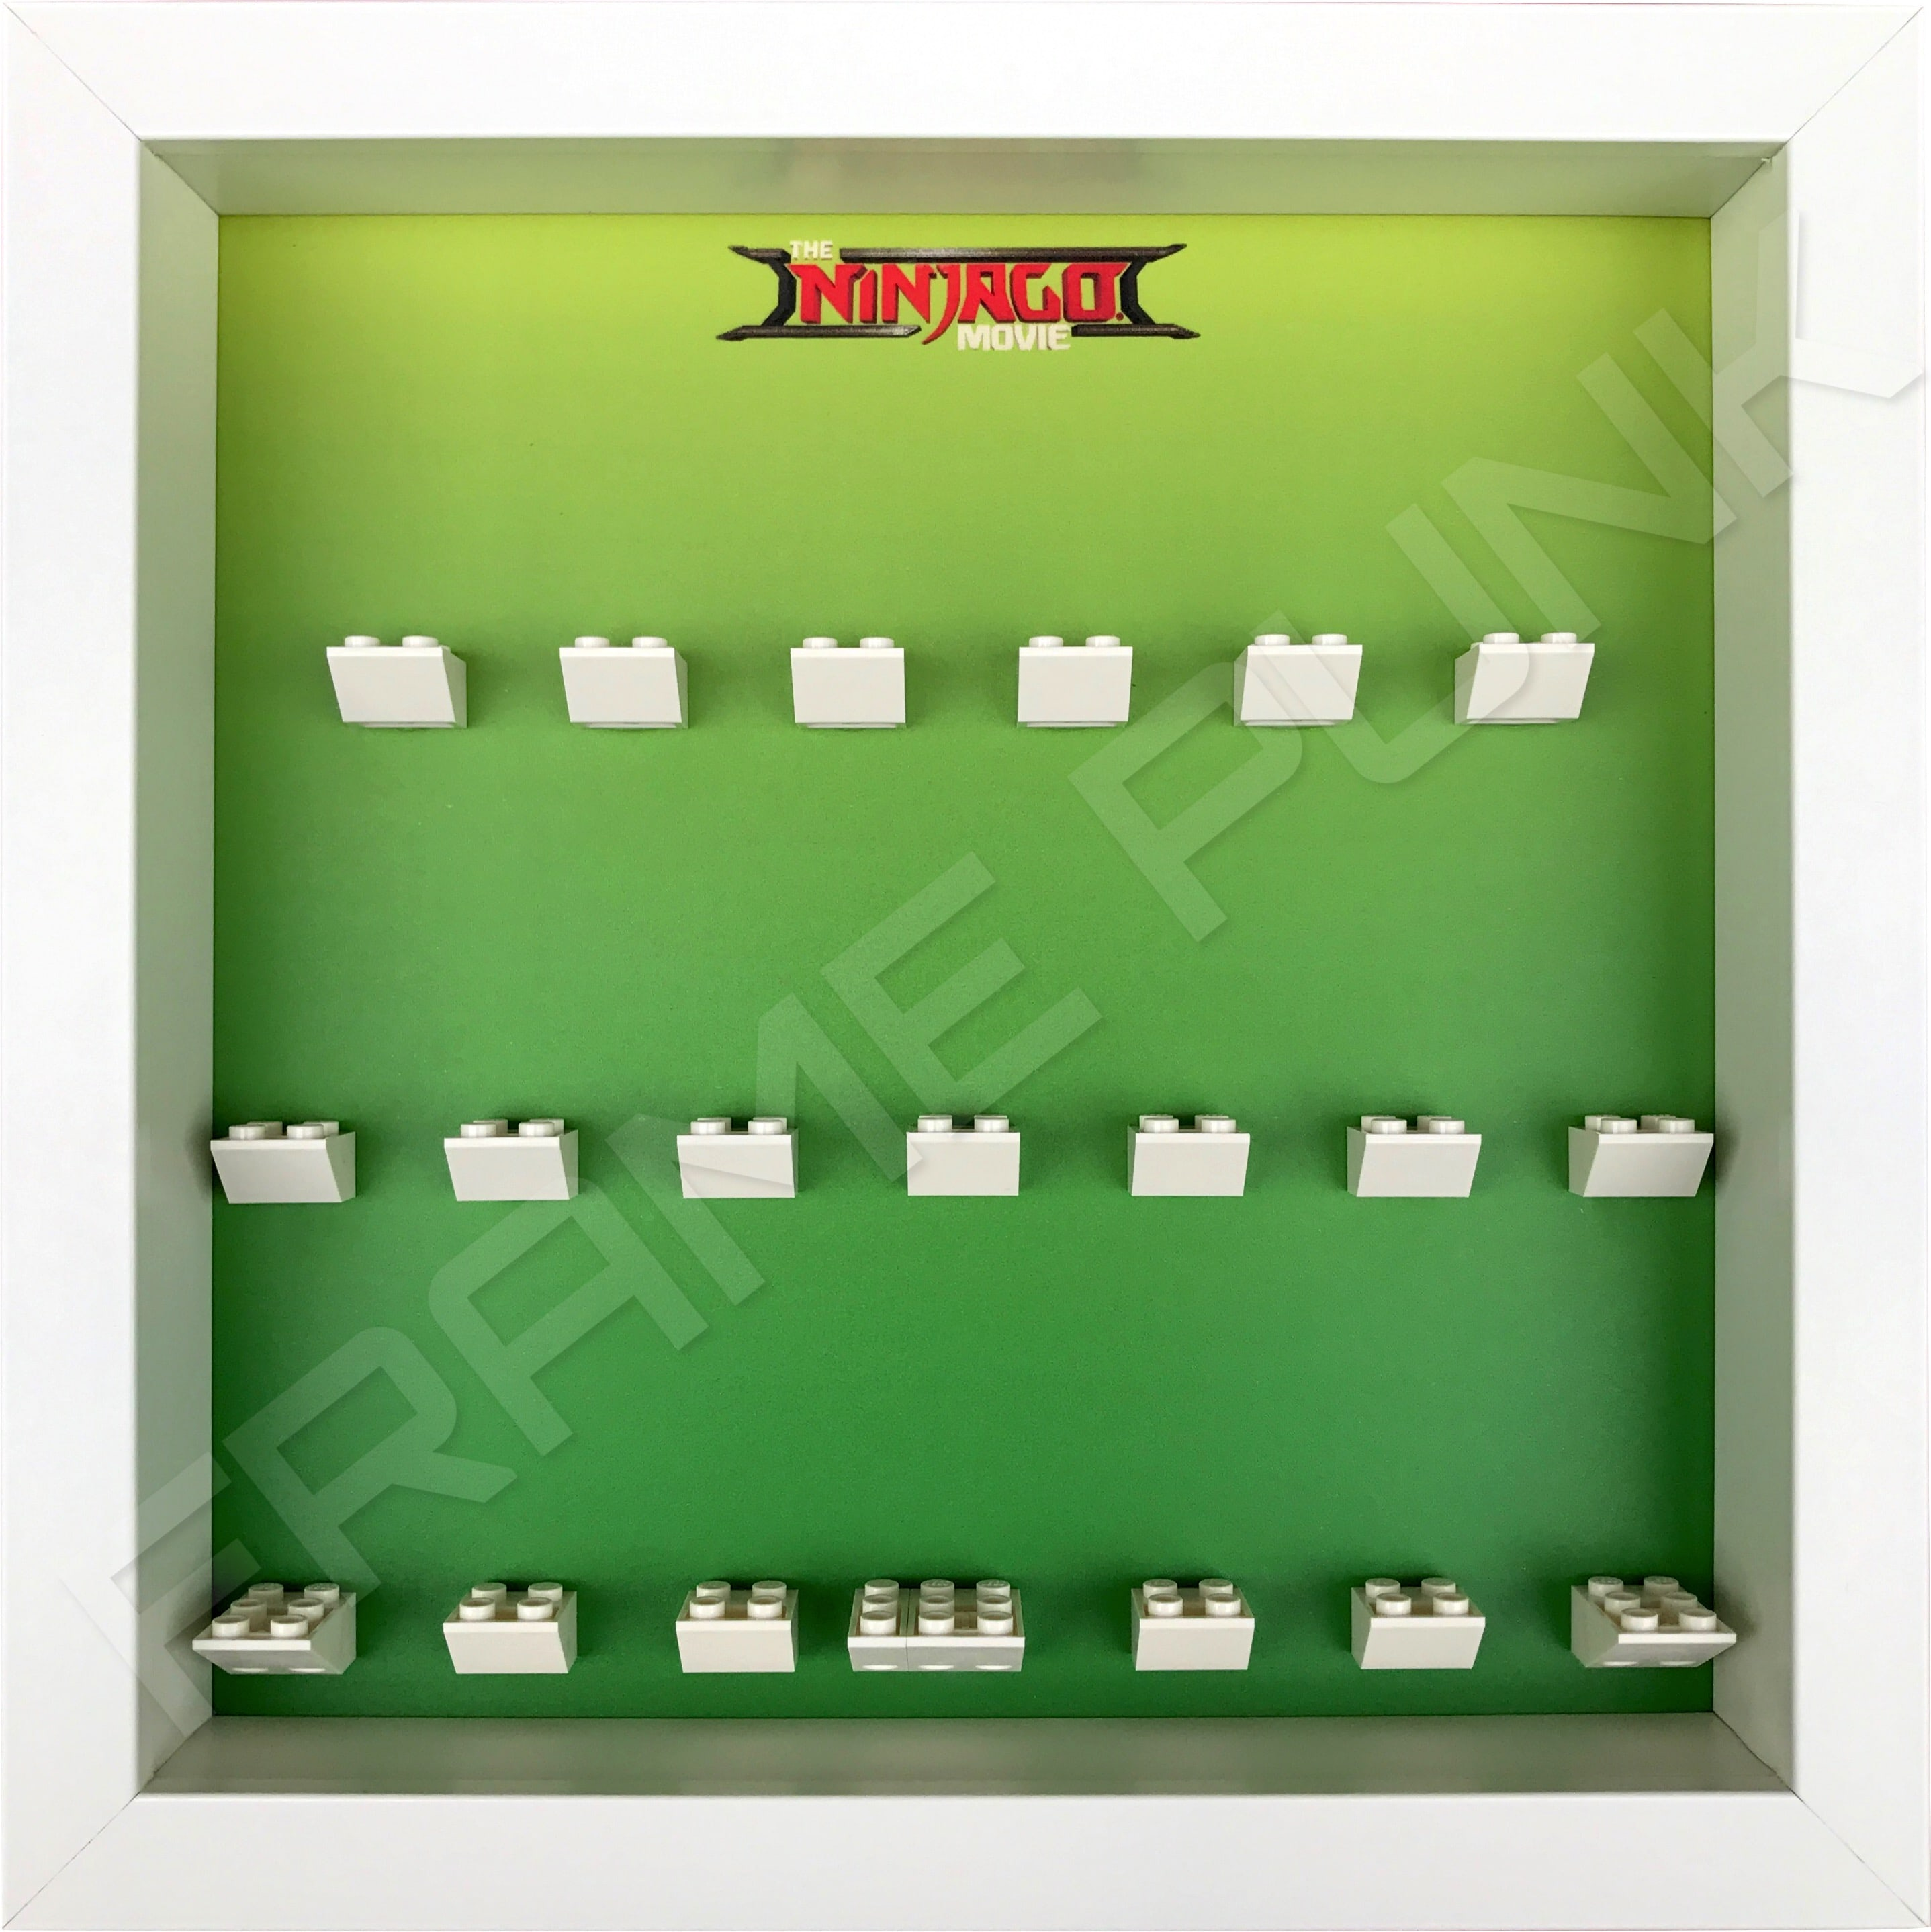 LEGO Ninjago Movie Minifigures Series display frame (green fade)